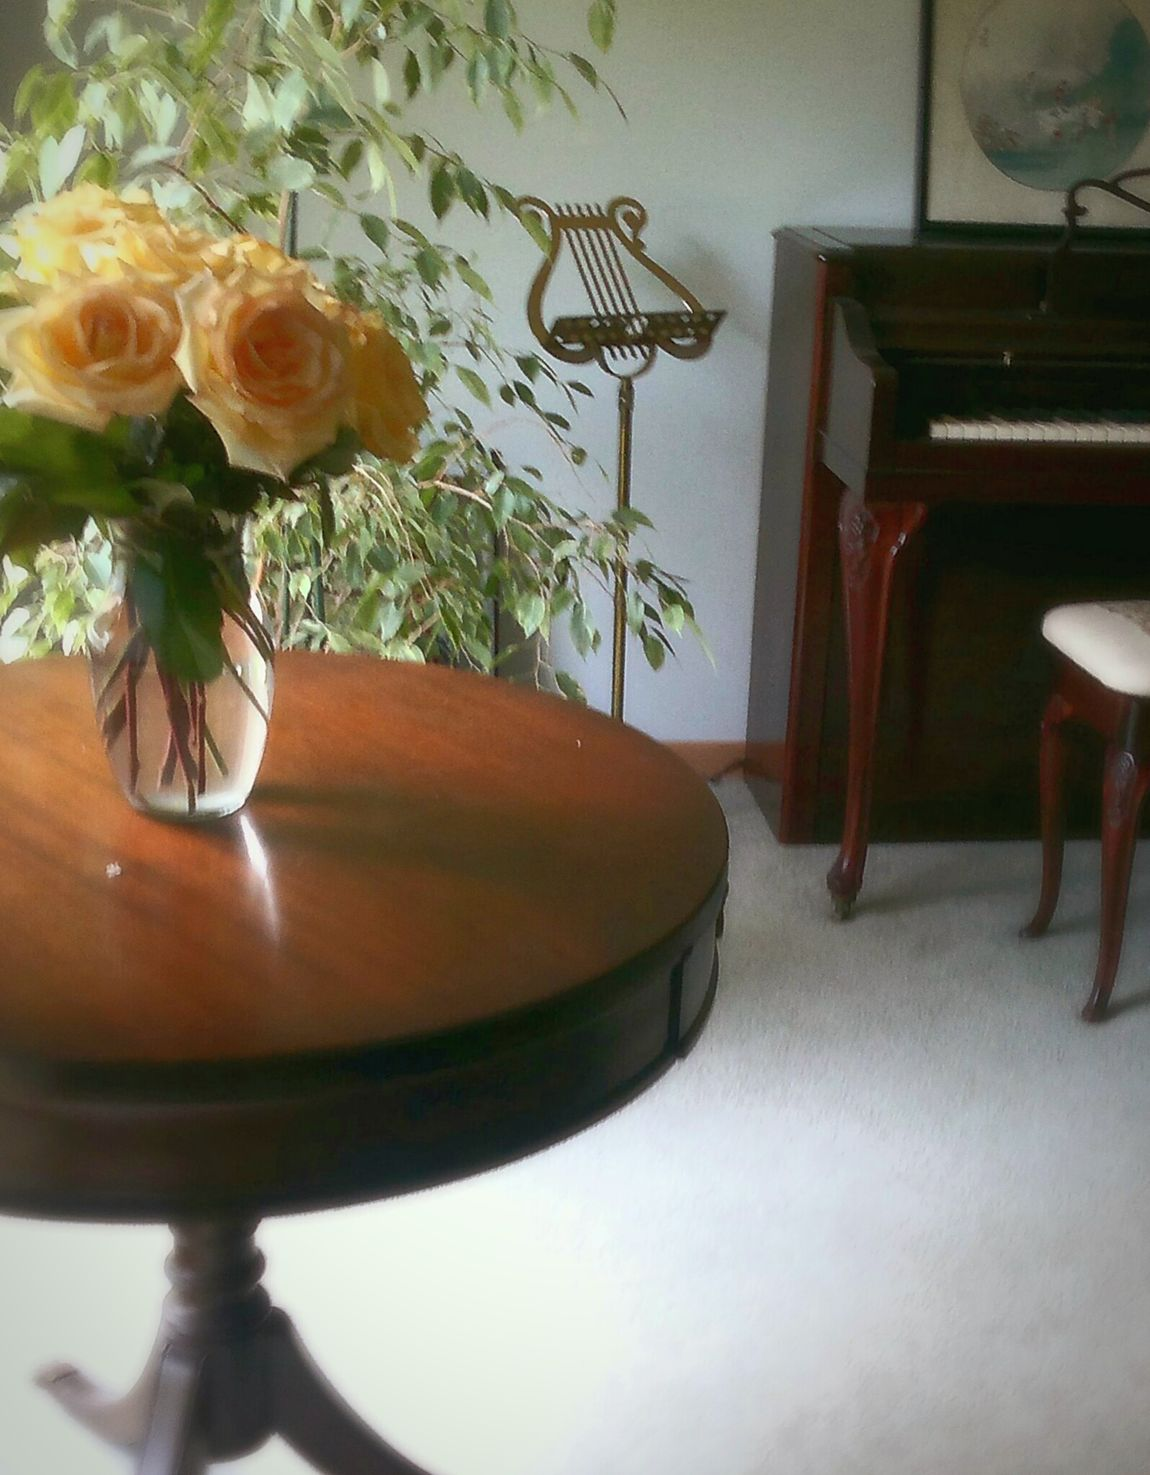 Easter Mission Eyeem Easter Ready EyeEm Yellow Roses Piano Living Room Music Stand Taking Photos Interior Design Home Sweet Home ♥ American Life Spring Flowers Springtime EyeEm Gallery Roses Sunny Room Sunny Day☀ Still Life Things I Like